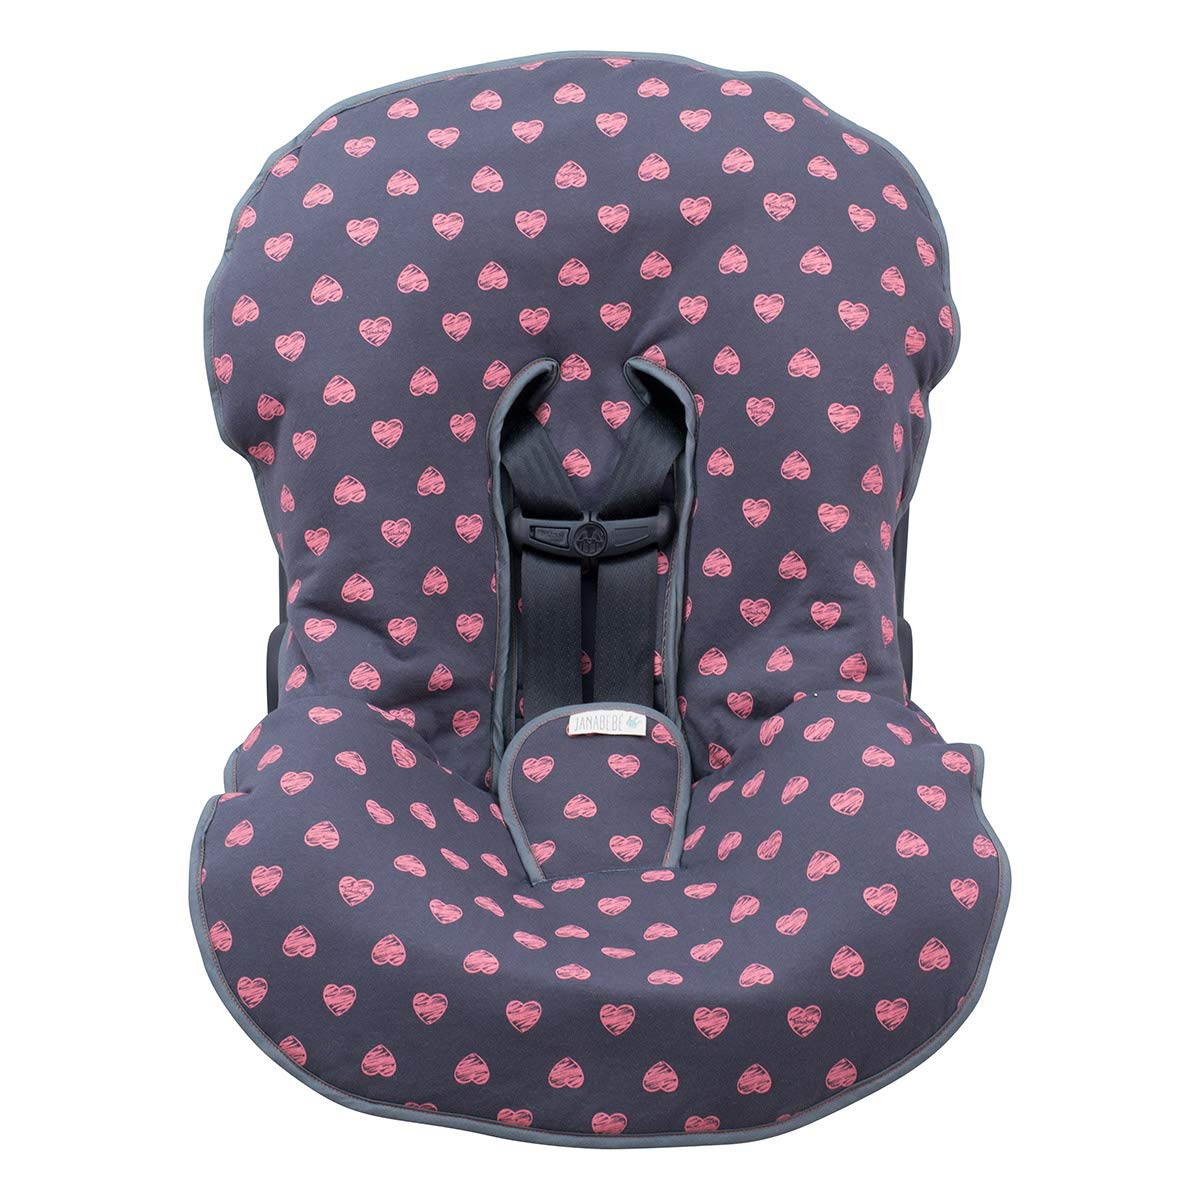 JANABEBE Universal Selling Padded Cover Liner for 1 Gr 0 Baby seat Clearance SALE Limited time car